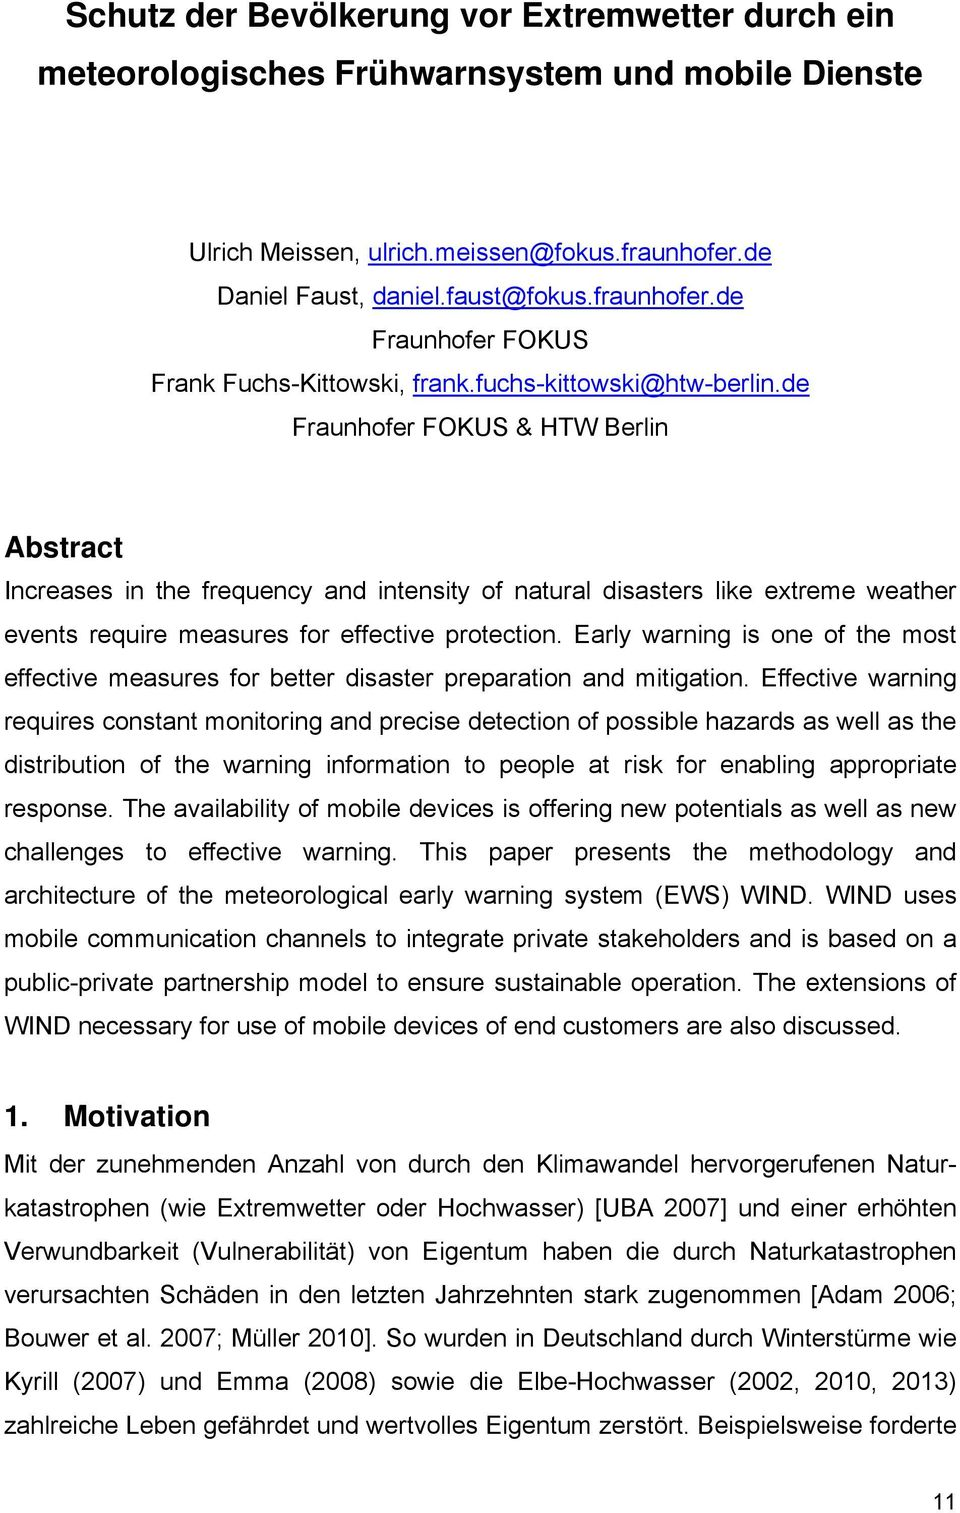 de Fraunhofer FOKUS & HTW Berlin Abstract Increases in the frequency and intensity of natural disasters like extreme weather events require measures for effective protection.